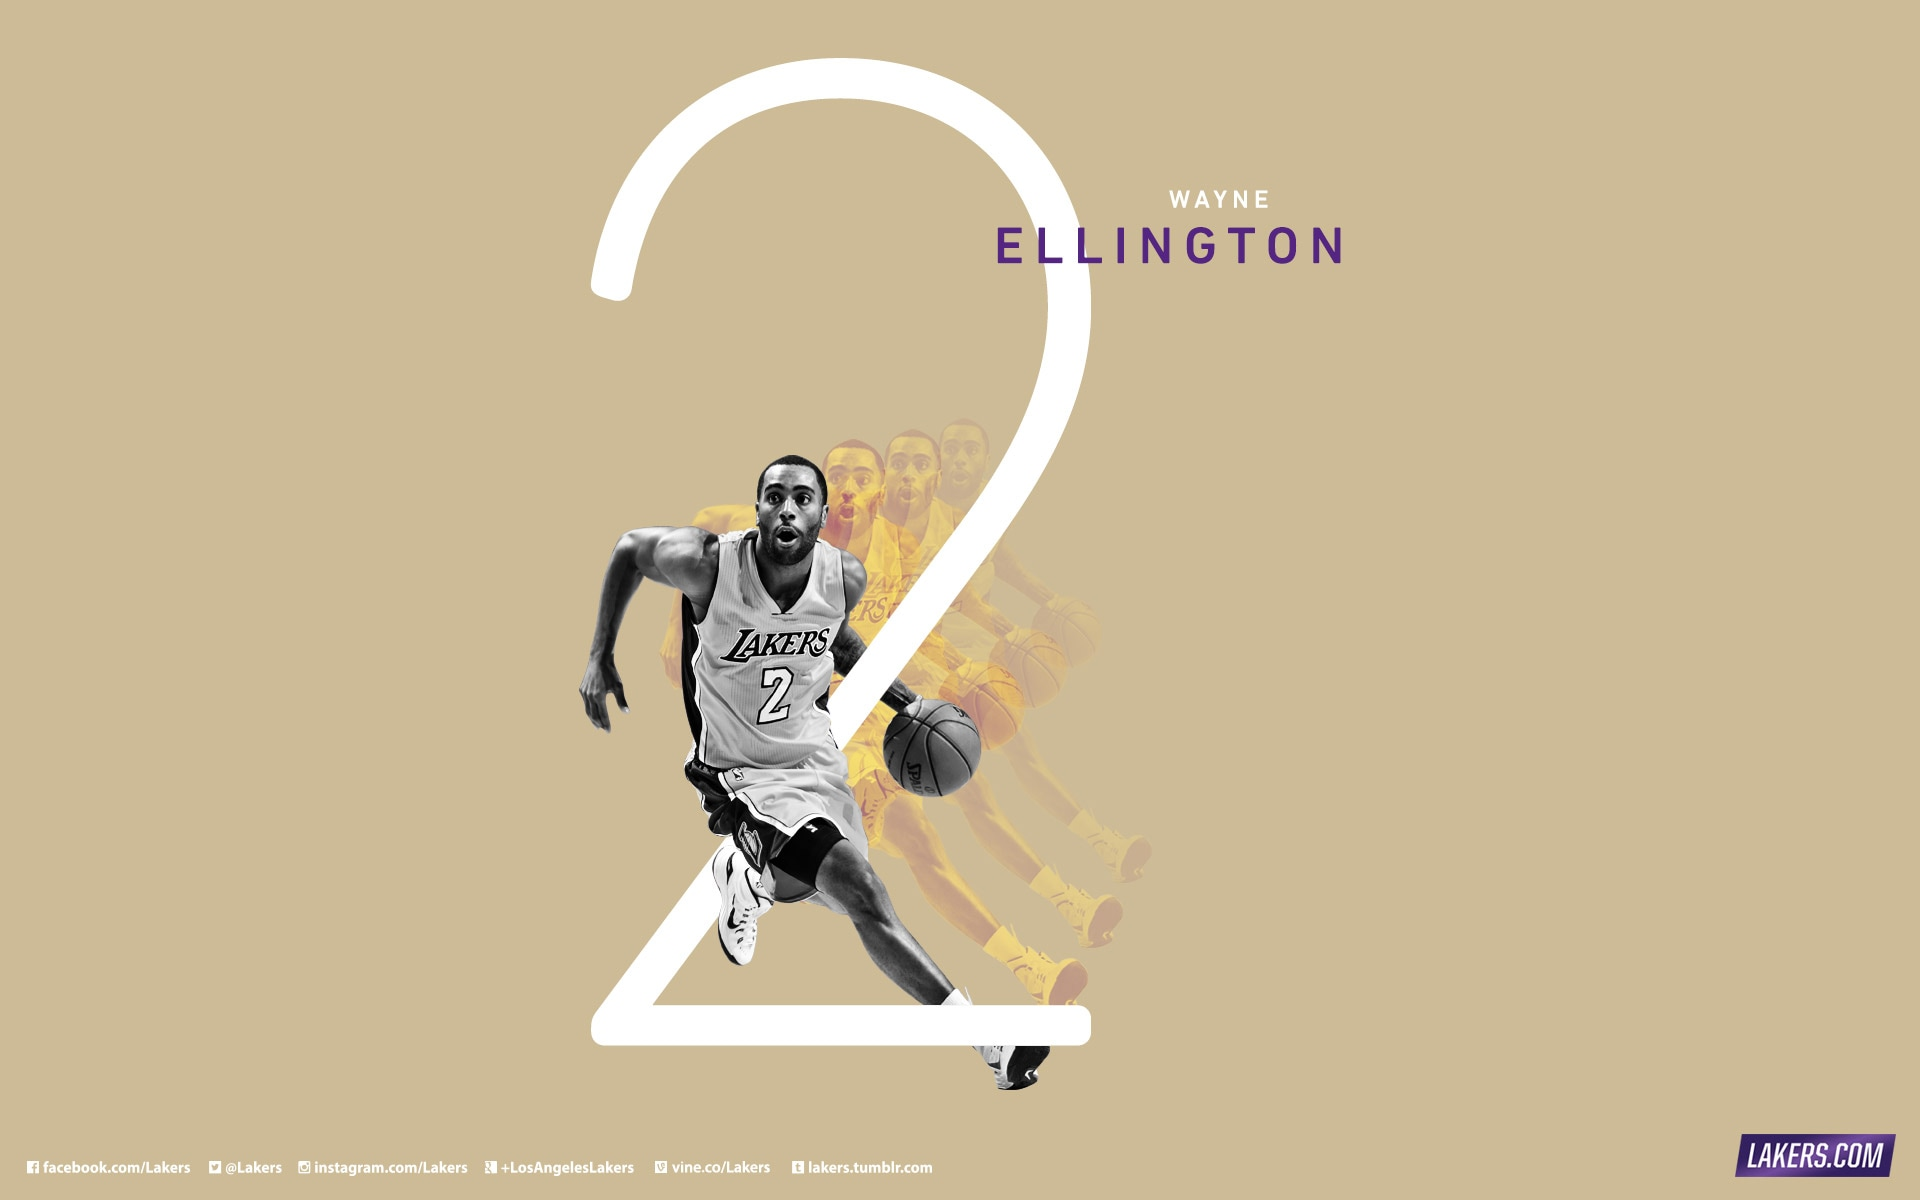 Wayne Ellington Player Wallpaper